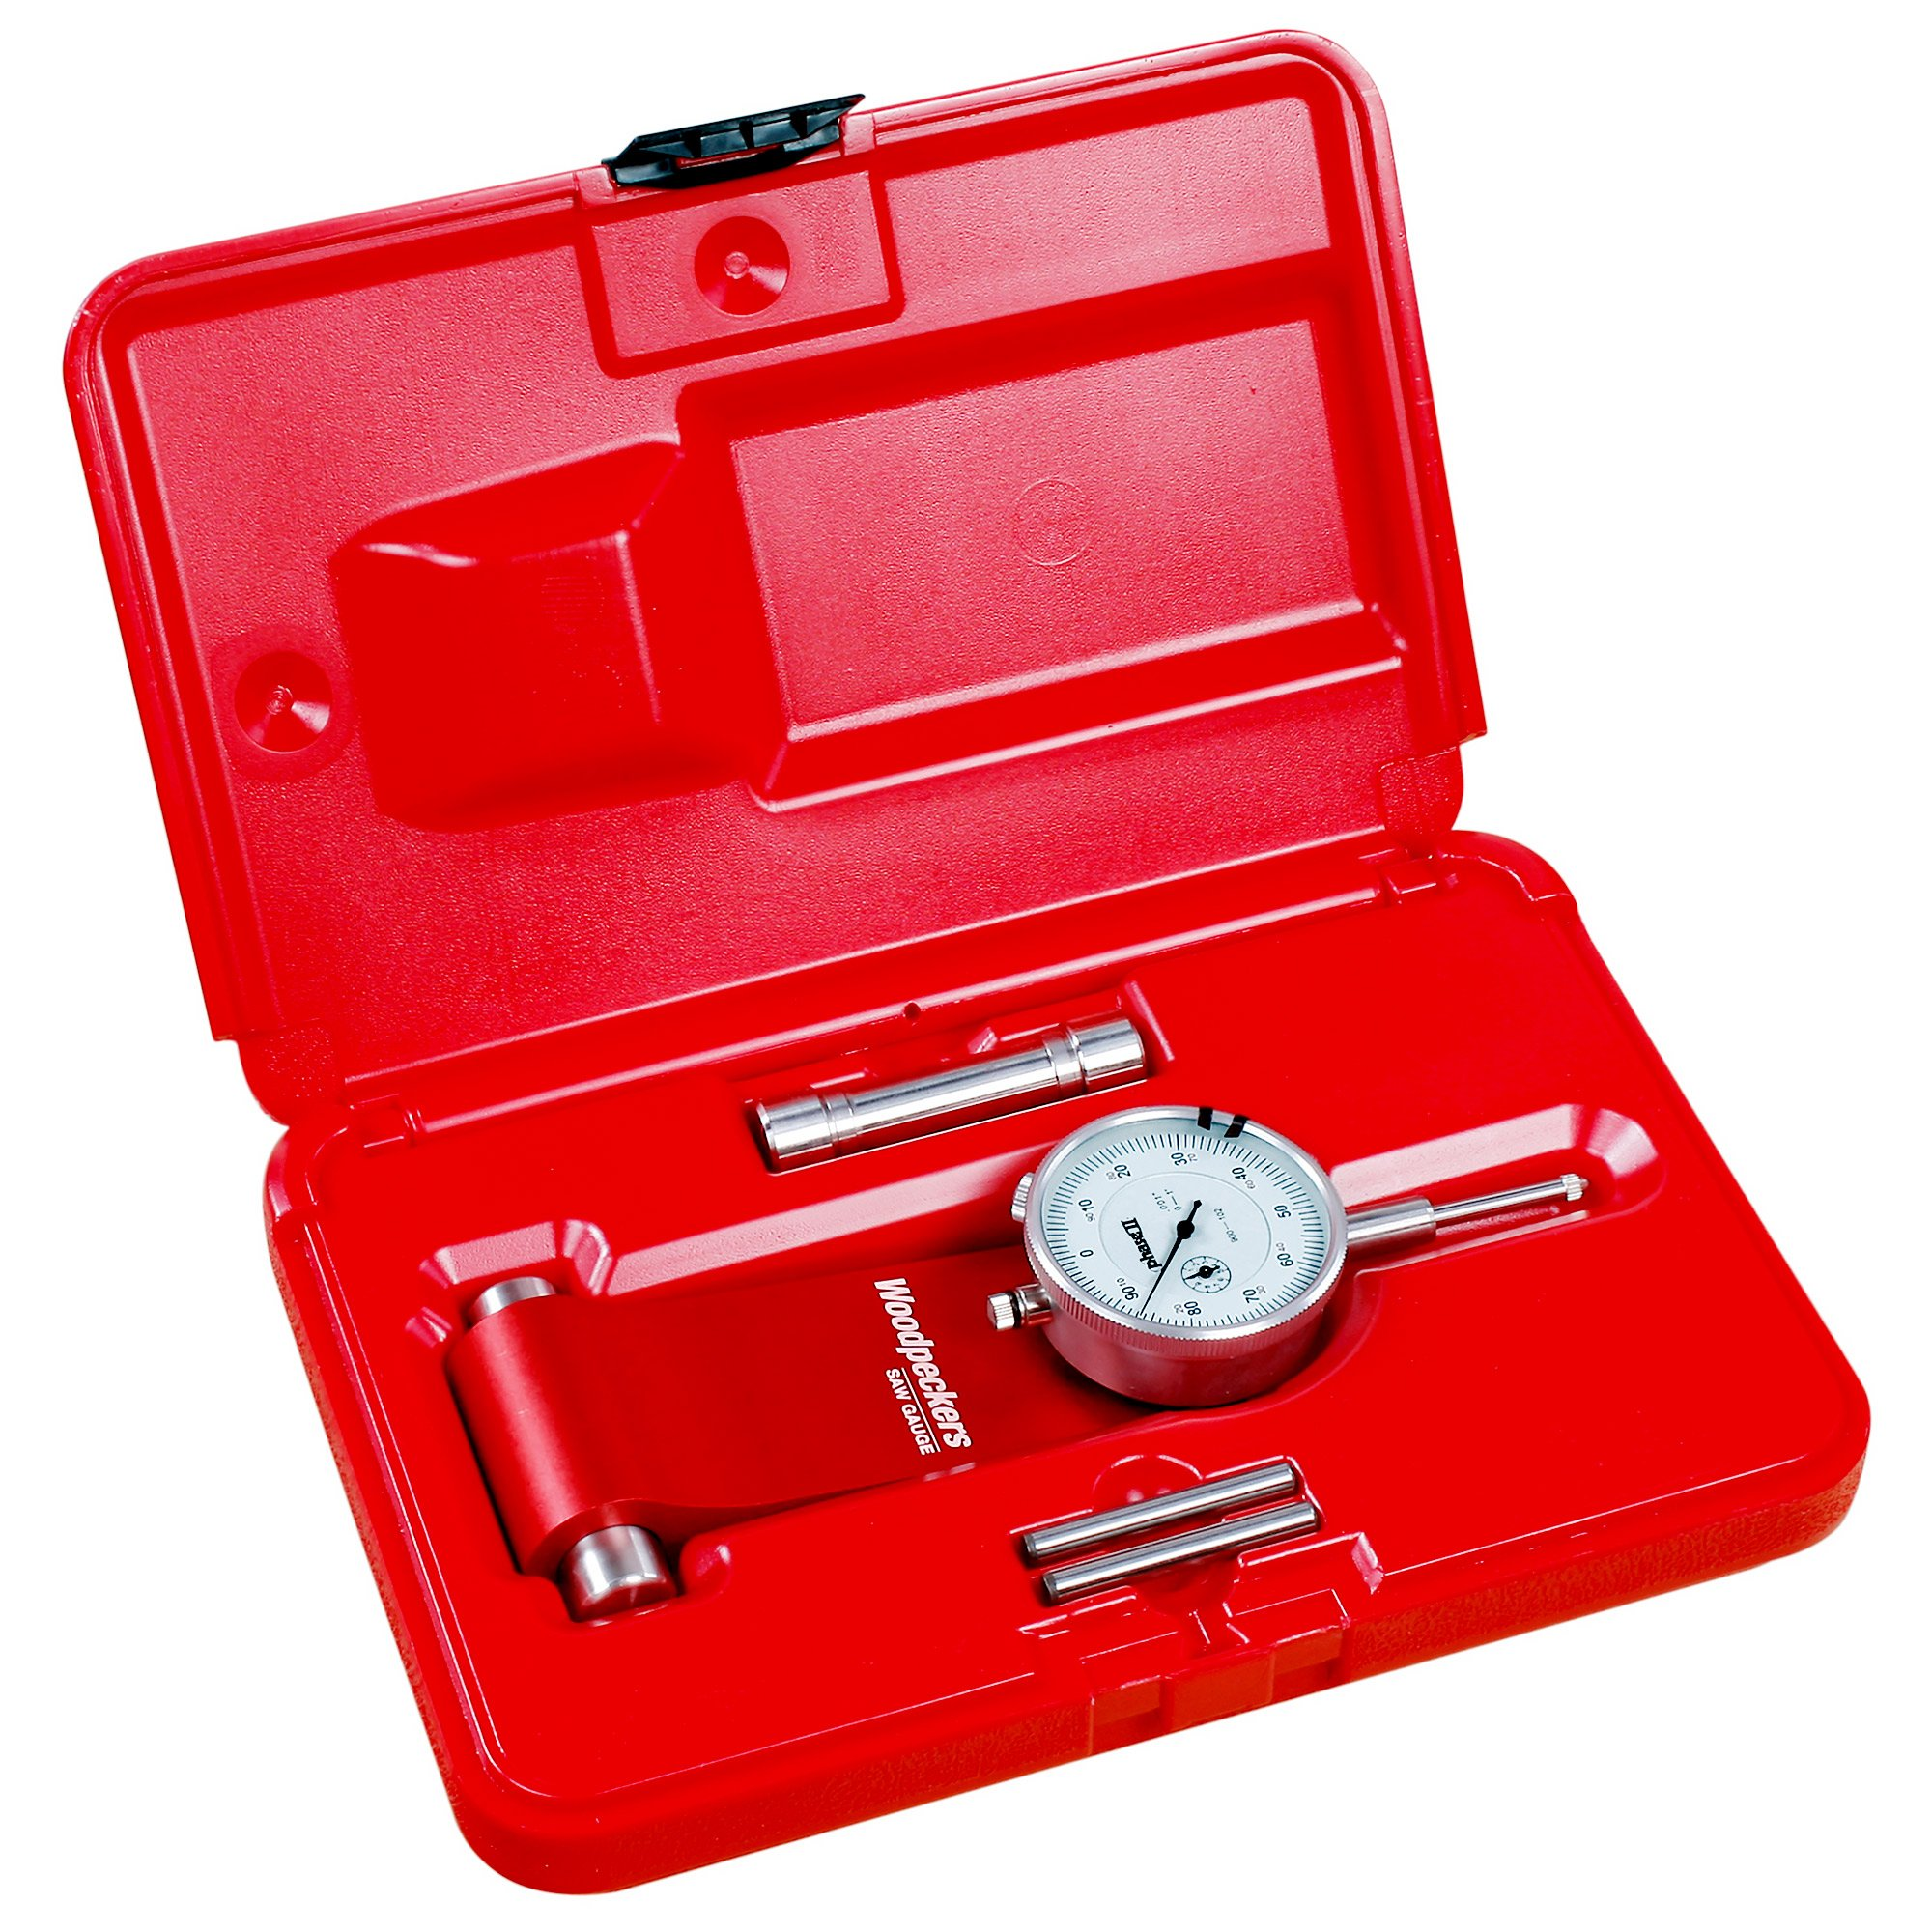 Woodpeckers Precision Woodworking Tools SG-WP Saw Gauge by Woodpeckers